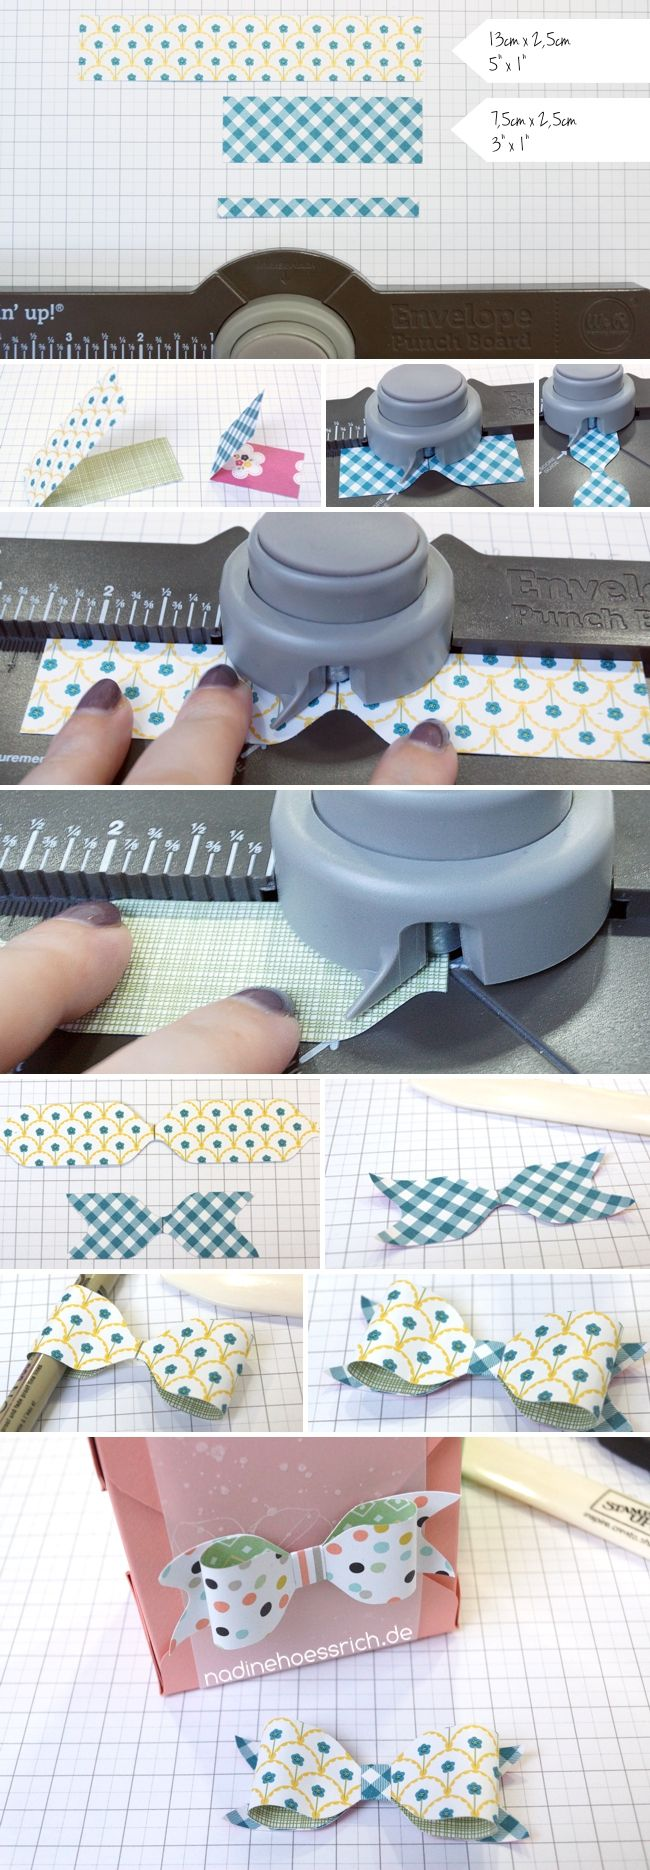 paper bow using envelope punch board - bjl